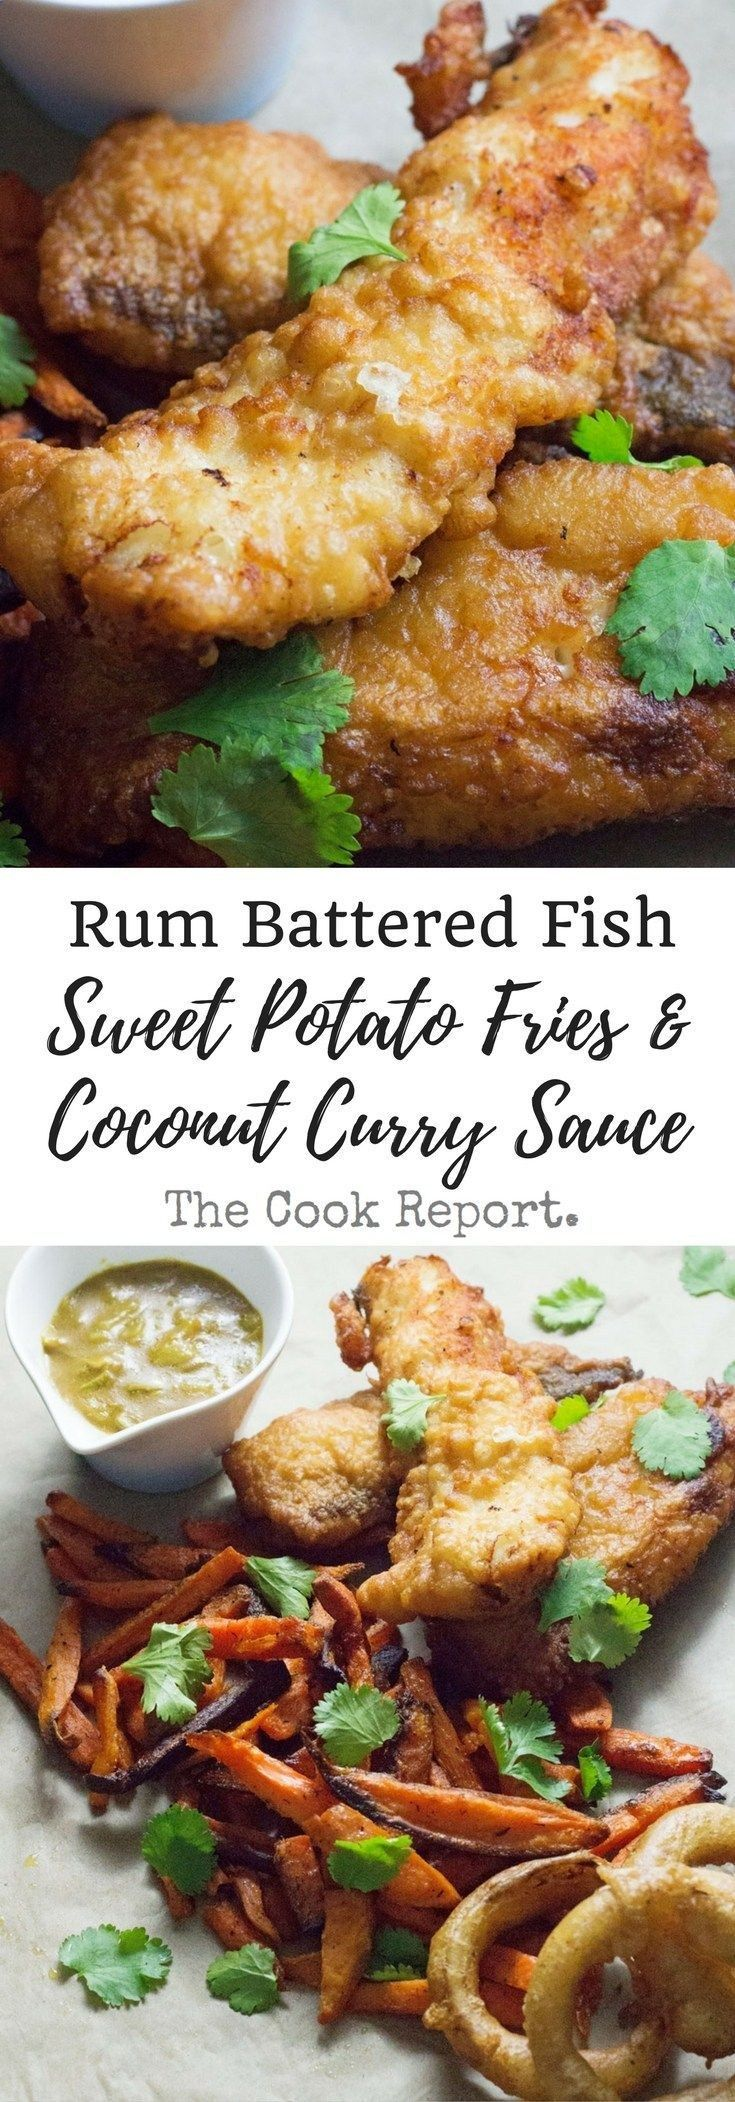 Photo of This Caribbean style fish and chips is made up of rum battered fish, sweet potat…